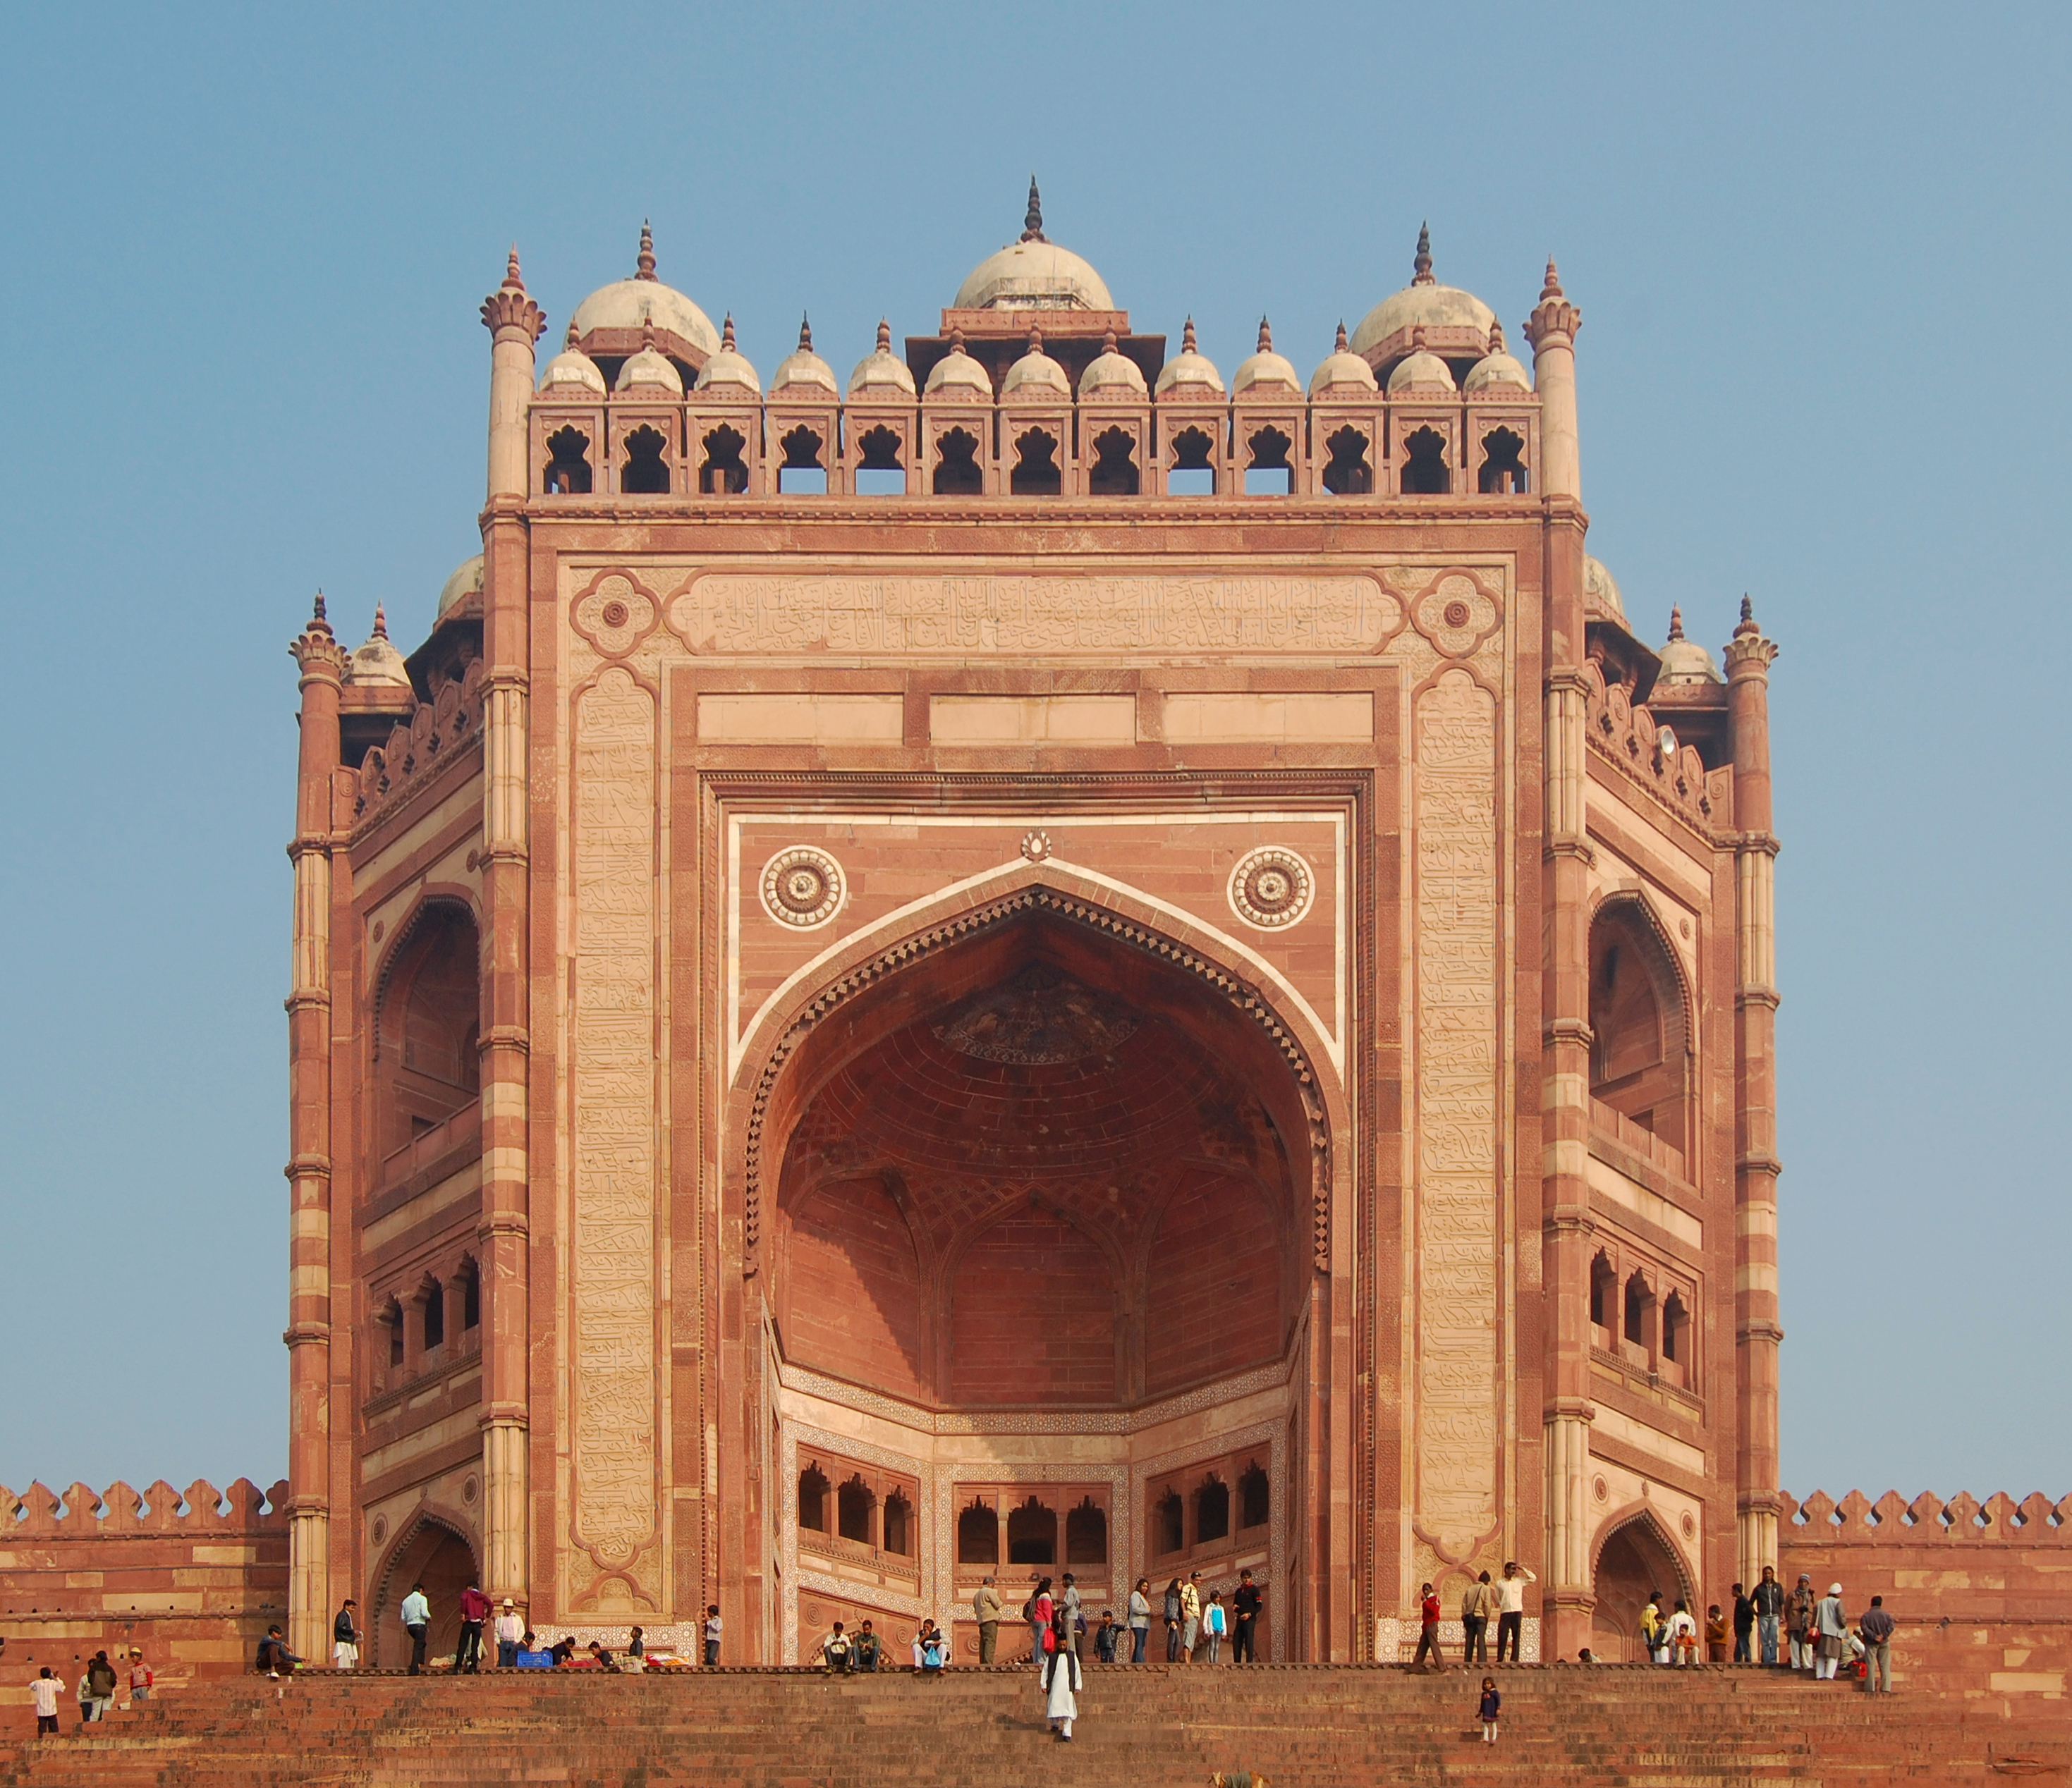 Fatehpur Sikri - Wikipedia on istanbul map world, new delhi map world, great wall of china map world, india map world, mumbai map world,